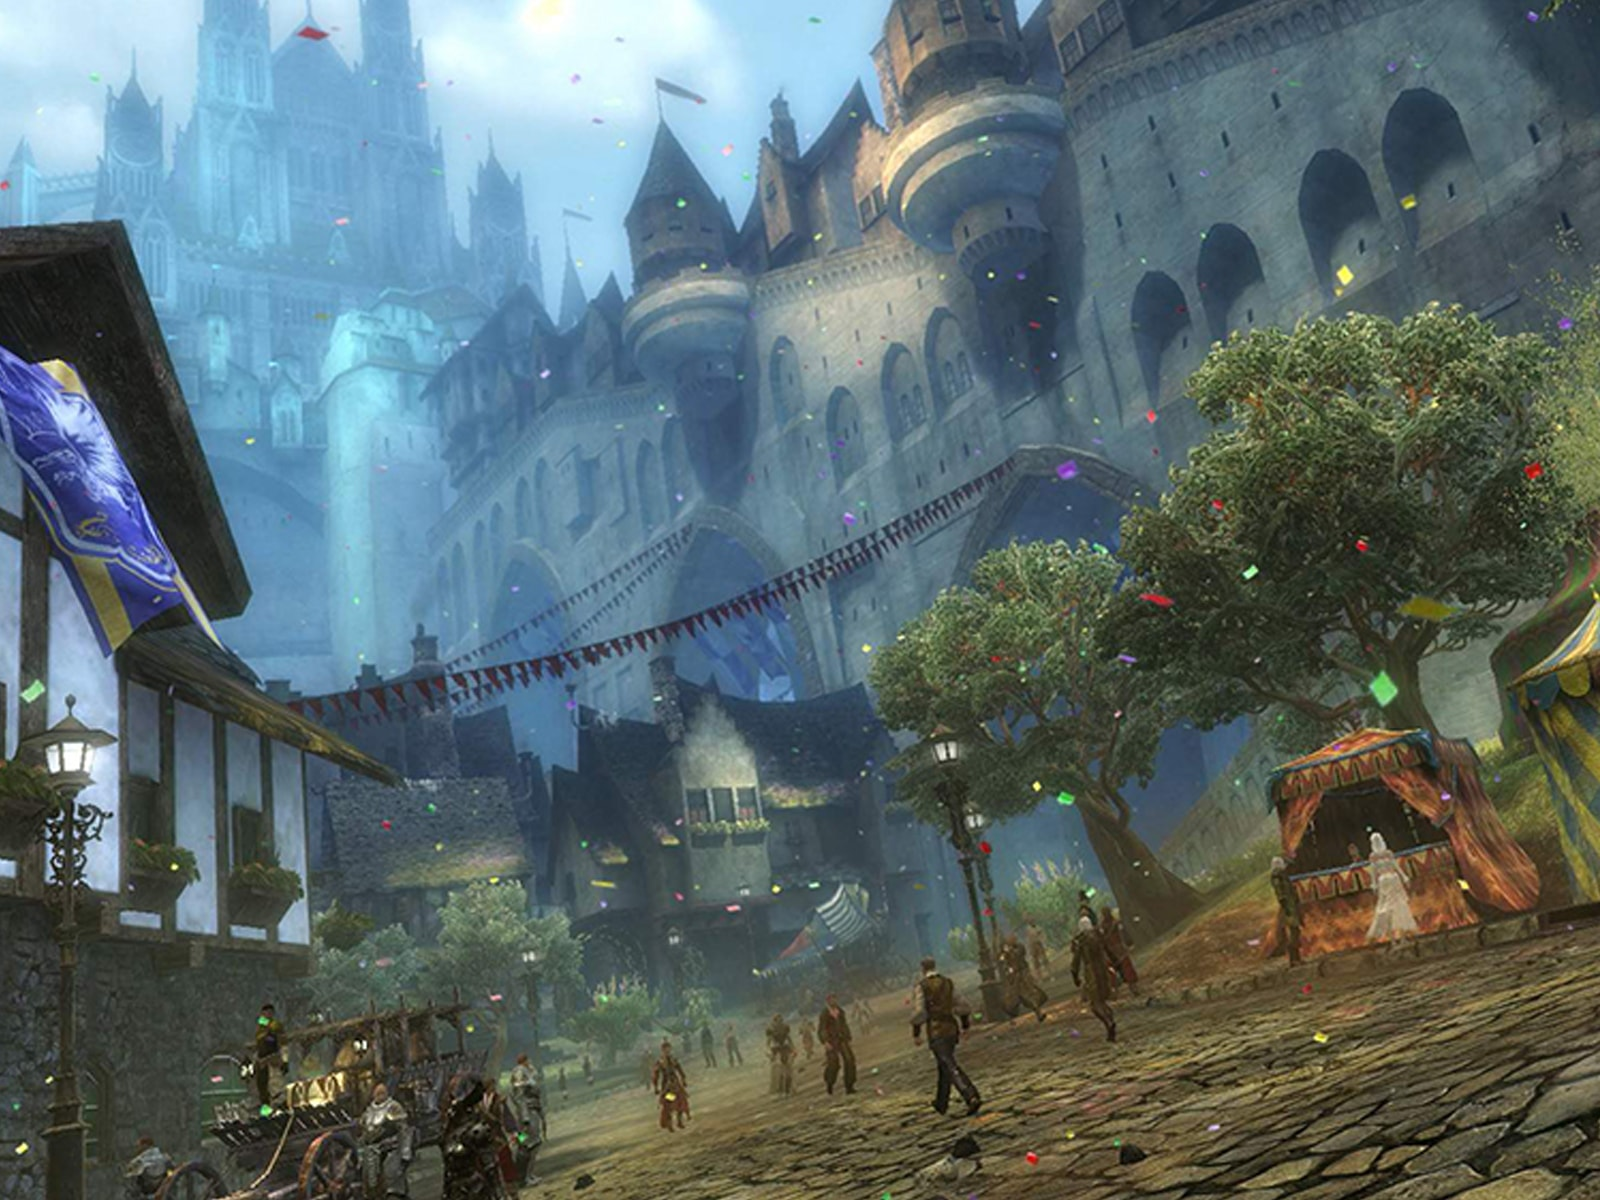 Scene from Guild Wars 2 featuring a village square surrounded by castle-like buildings at twilight